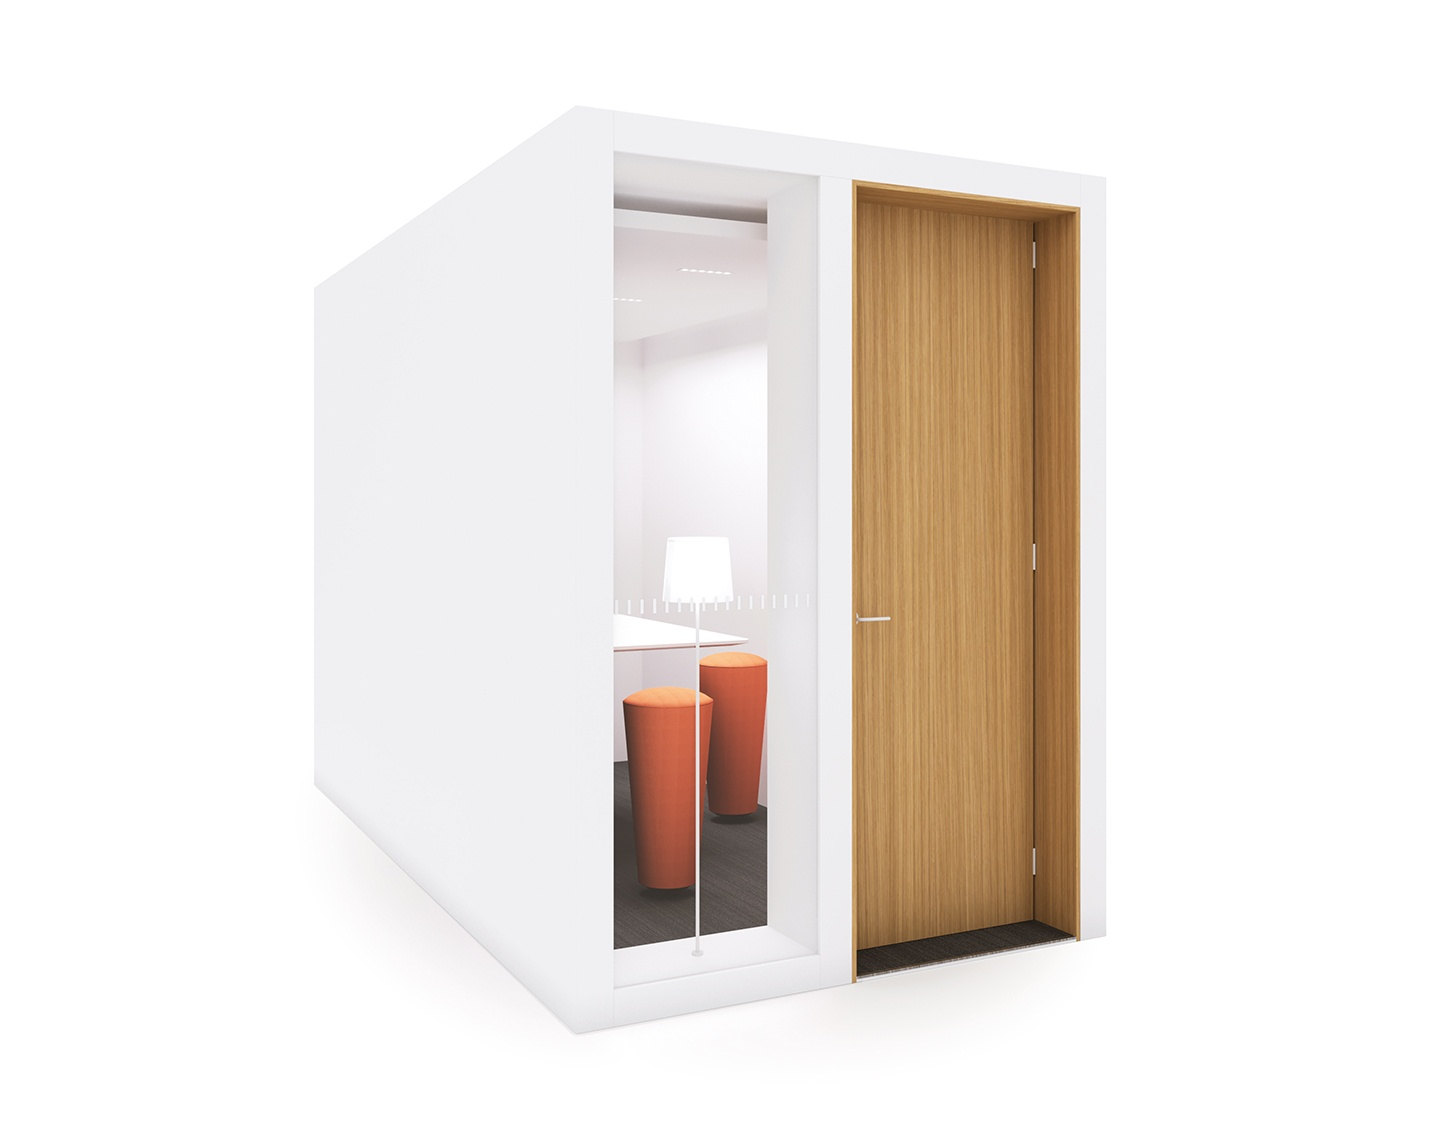 The soundproof office pod for small meetings